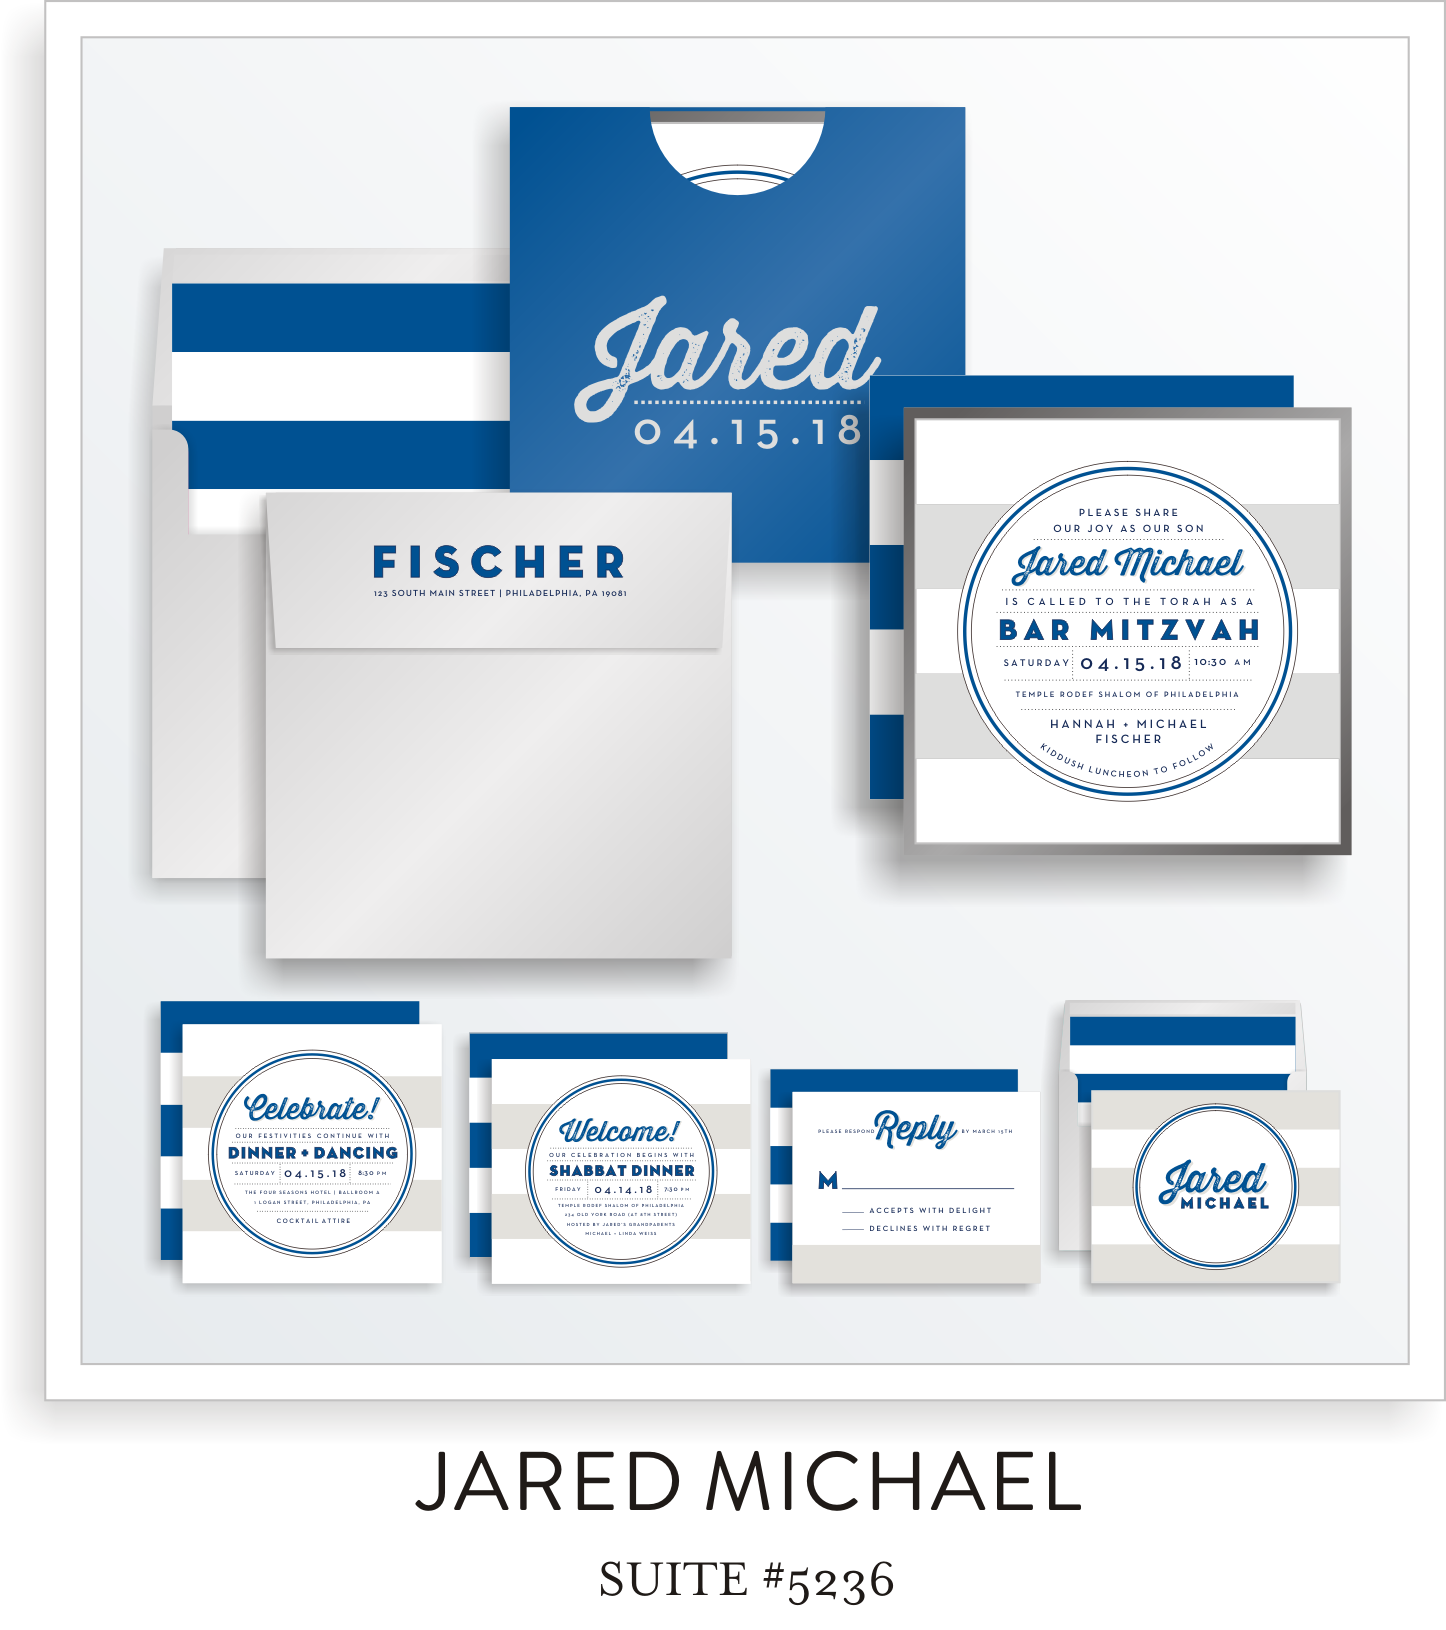 Copy of Copy of <a href=/bar-mitzvah-invitations-5236>Suite Details→</a><strong><a href=/jared-michael-in-colors>see more colors→</a></strong>